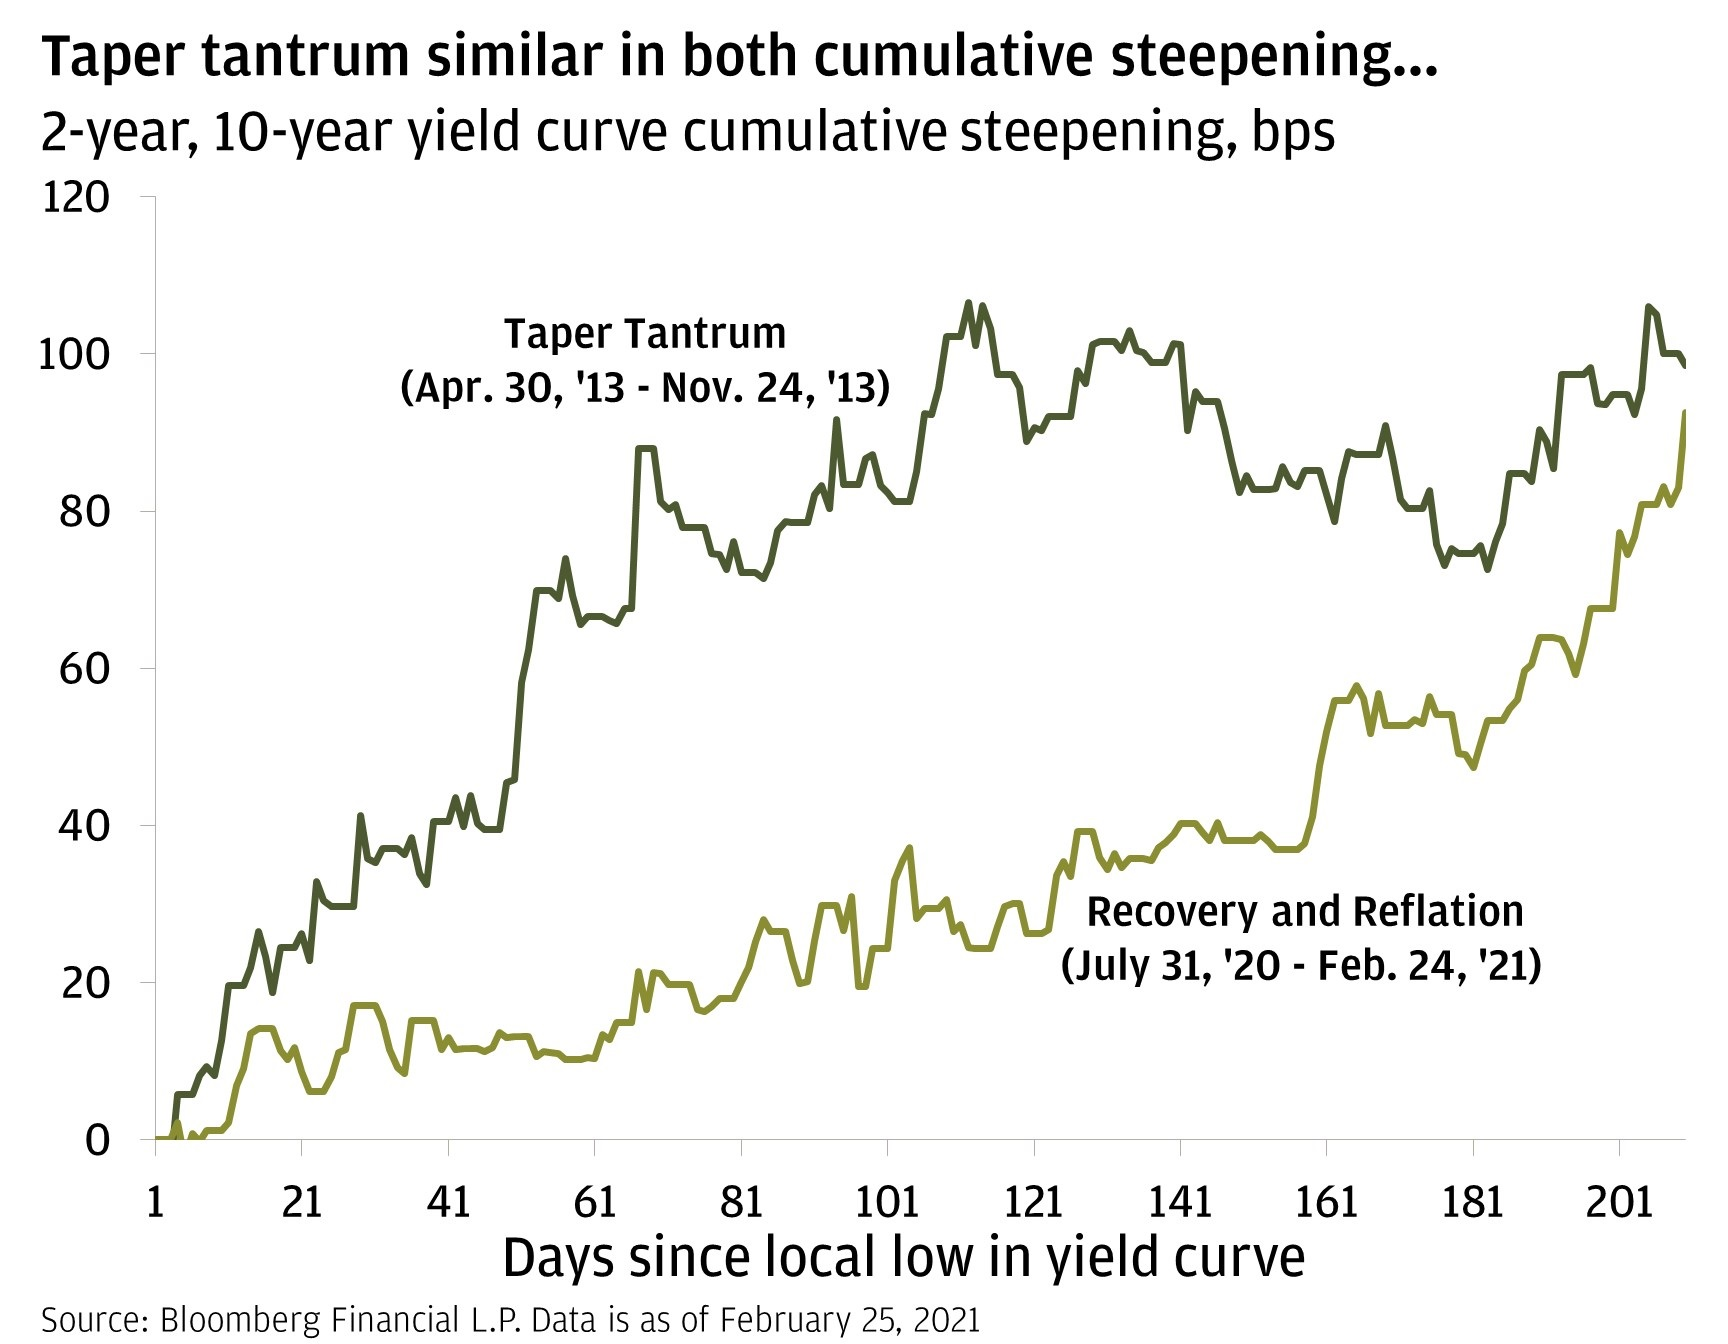 Chart 3: This chart shows the cumulative steepening in basis points between the yield on the 2-year and 10-year Treasury yields during the Taper Tantrum from April 30, 2013, to November 24, 2013, and during the recovery and reflation episode from July 31, 2020, to February 24, 2021.